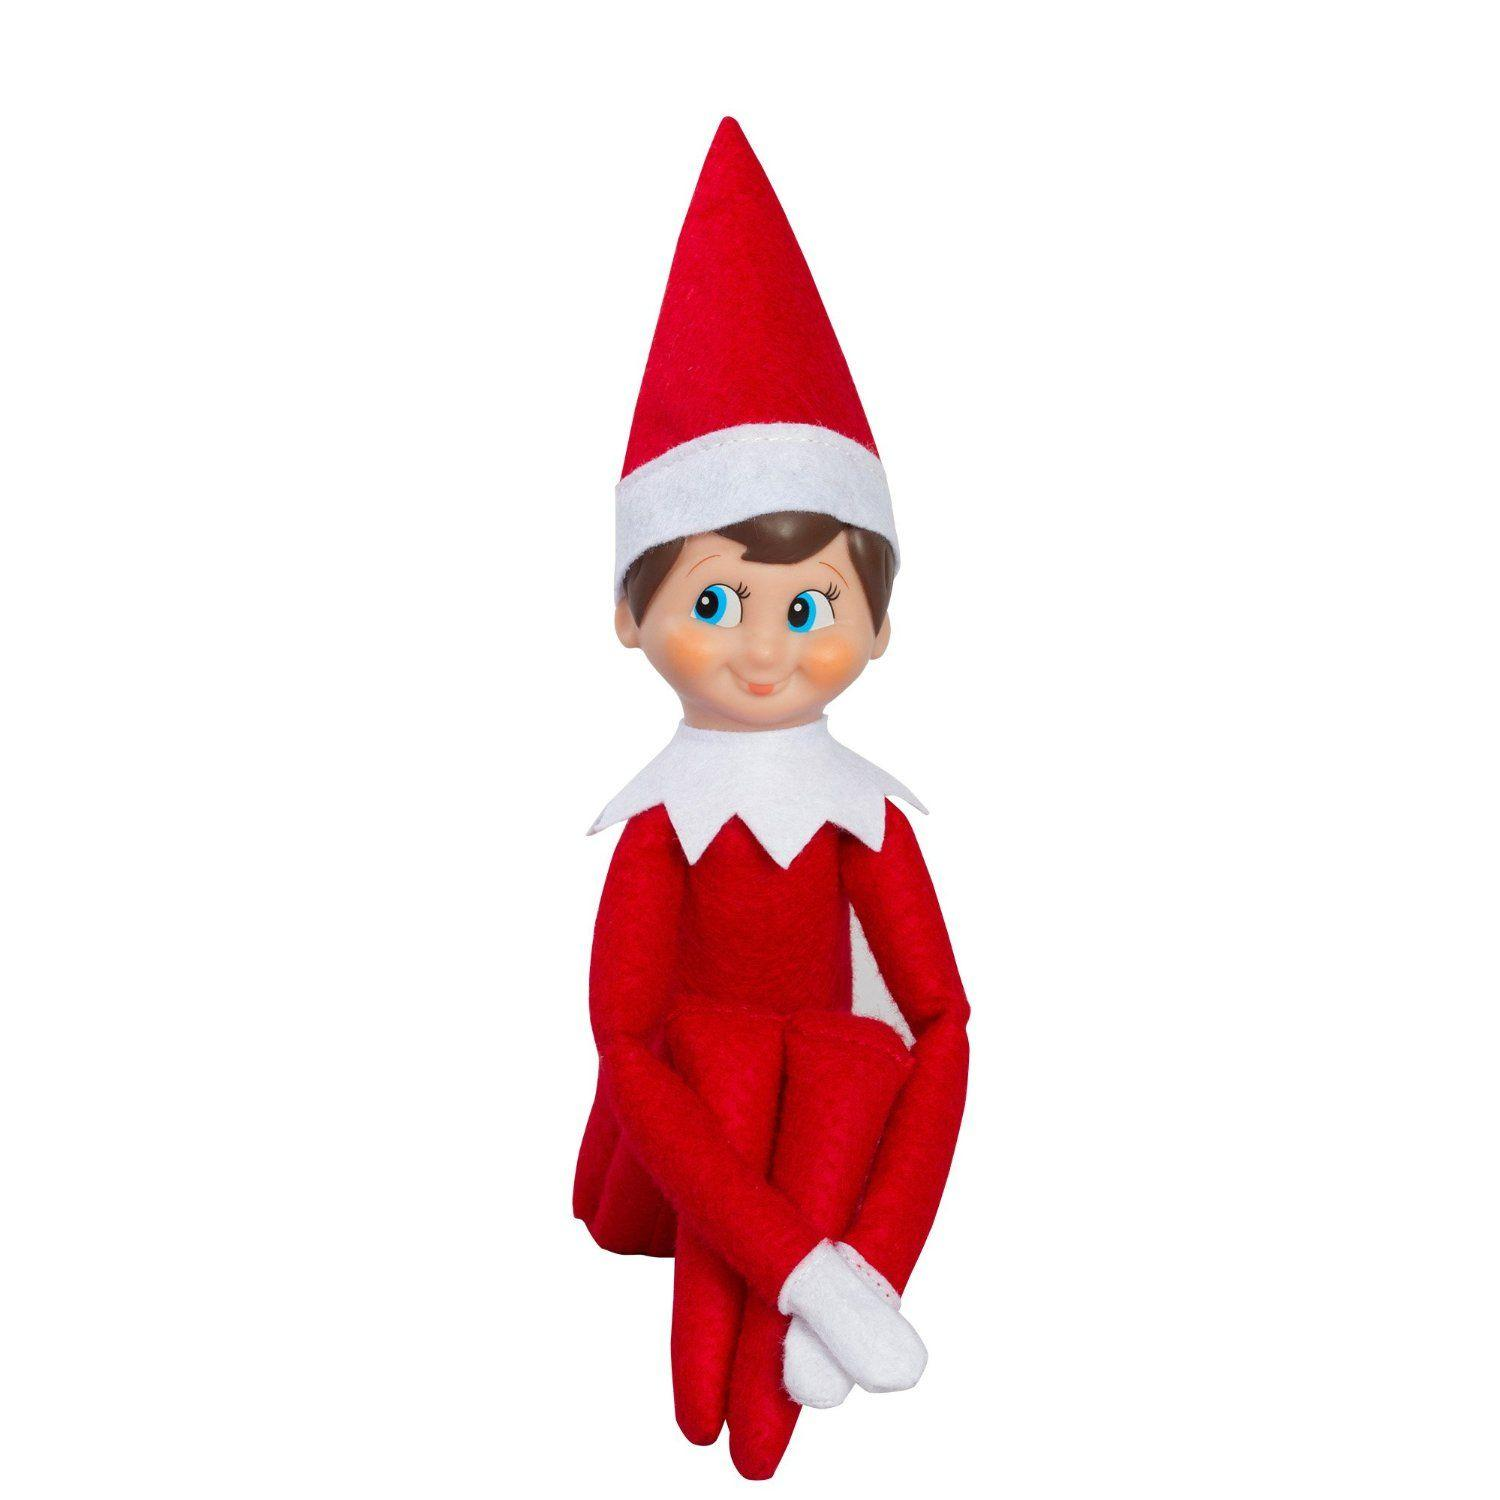 Booktopia - The Elf on the Shelf (boy elf w/ light skin ...